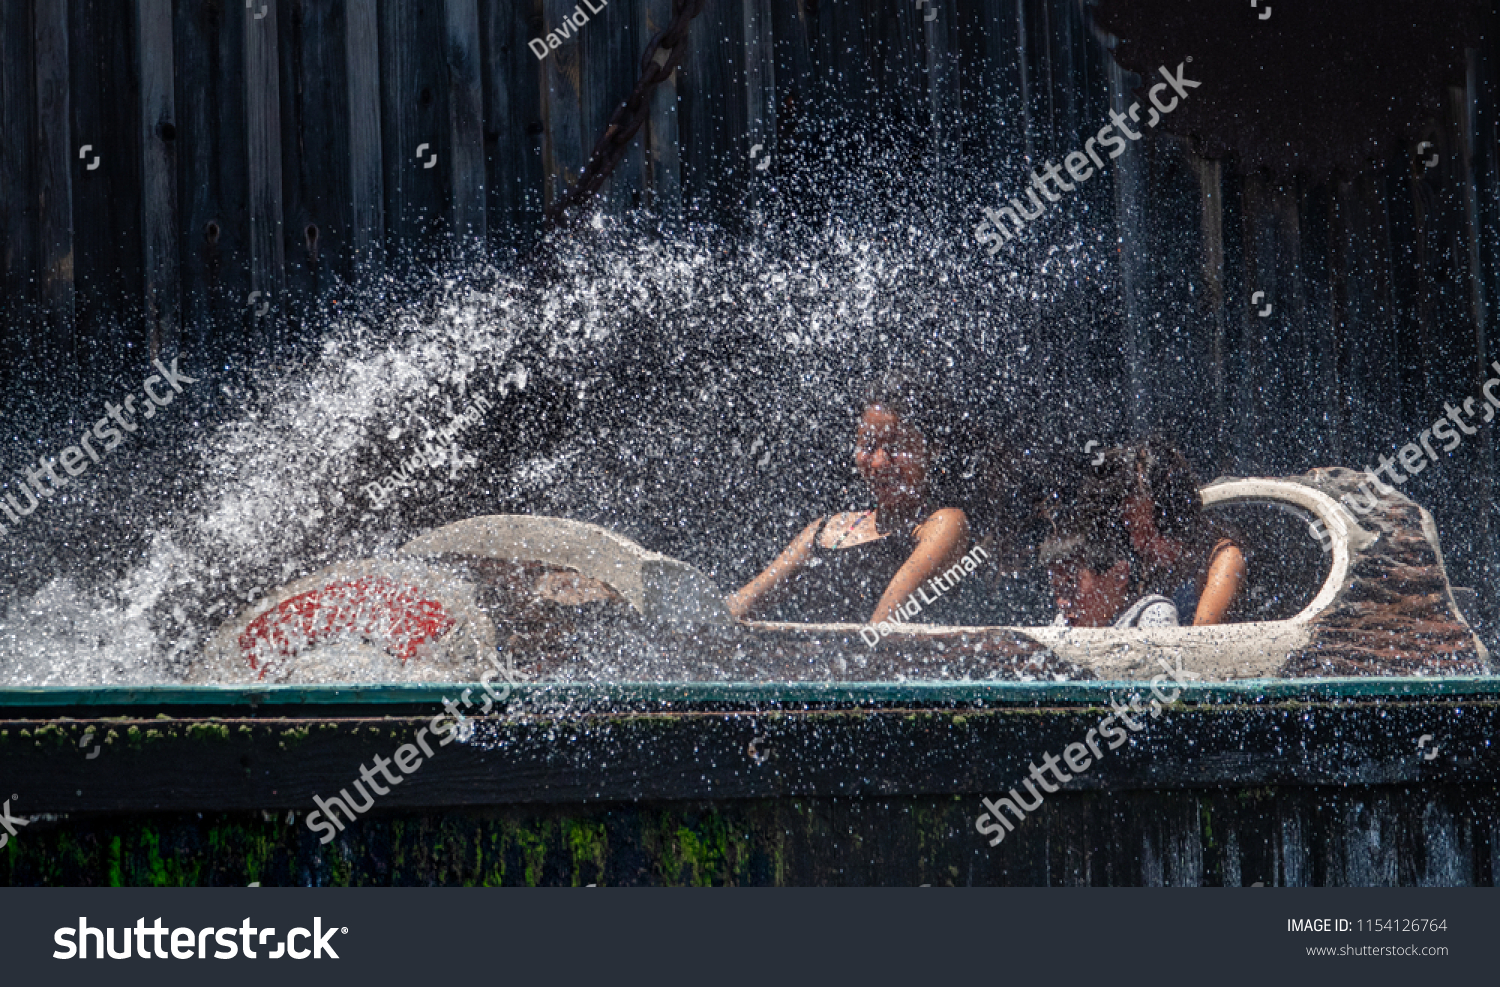 Santa Cruz, California - July 24, 2018: People are splashed and drenched with water, obscuring their faces, at the bottom of Logger's Revenge flume water ride  at Pacific Park on a hot summer day.